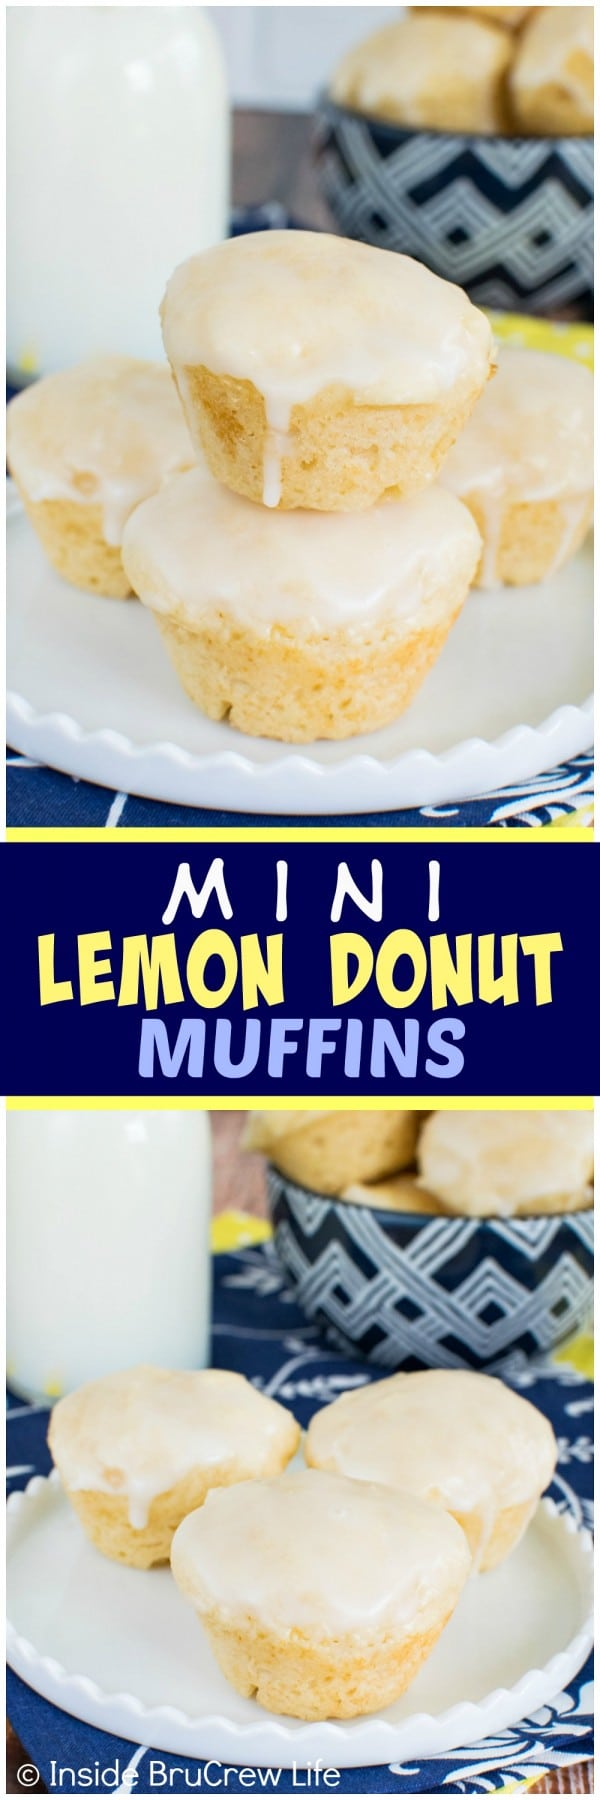 Mini Lemon Donut Muffins - these easy little muffins are loaded with lemon goodness! Perfect breakfast recipe!